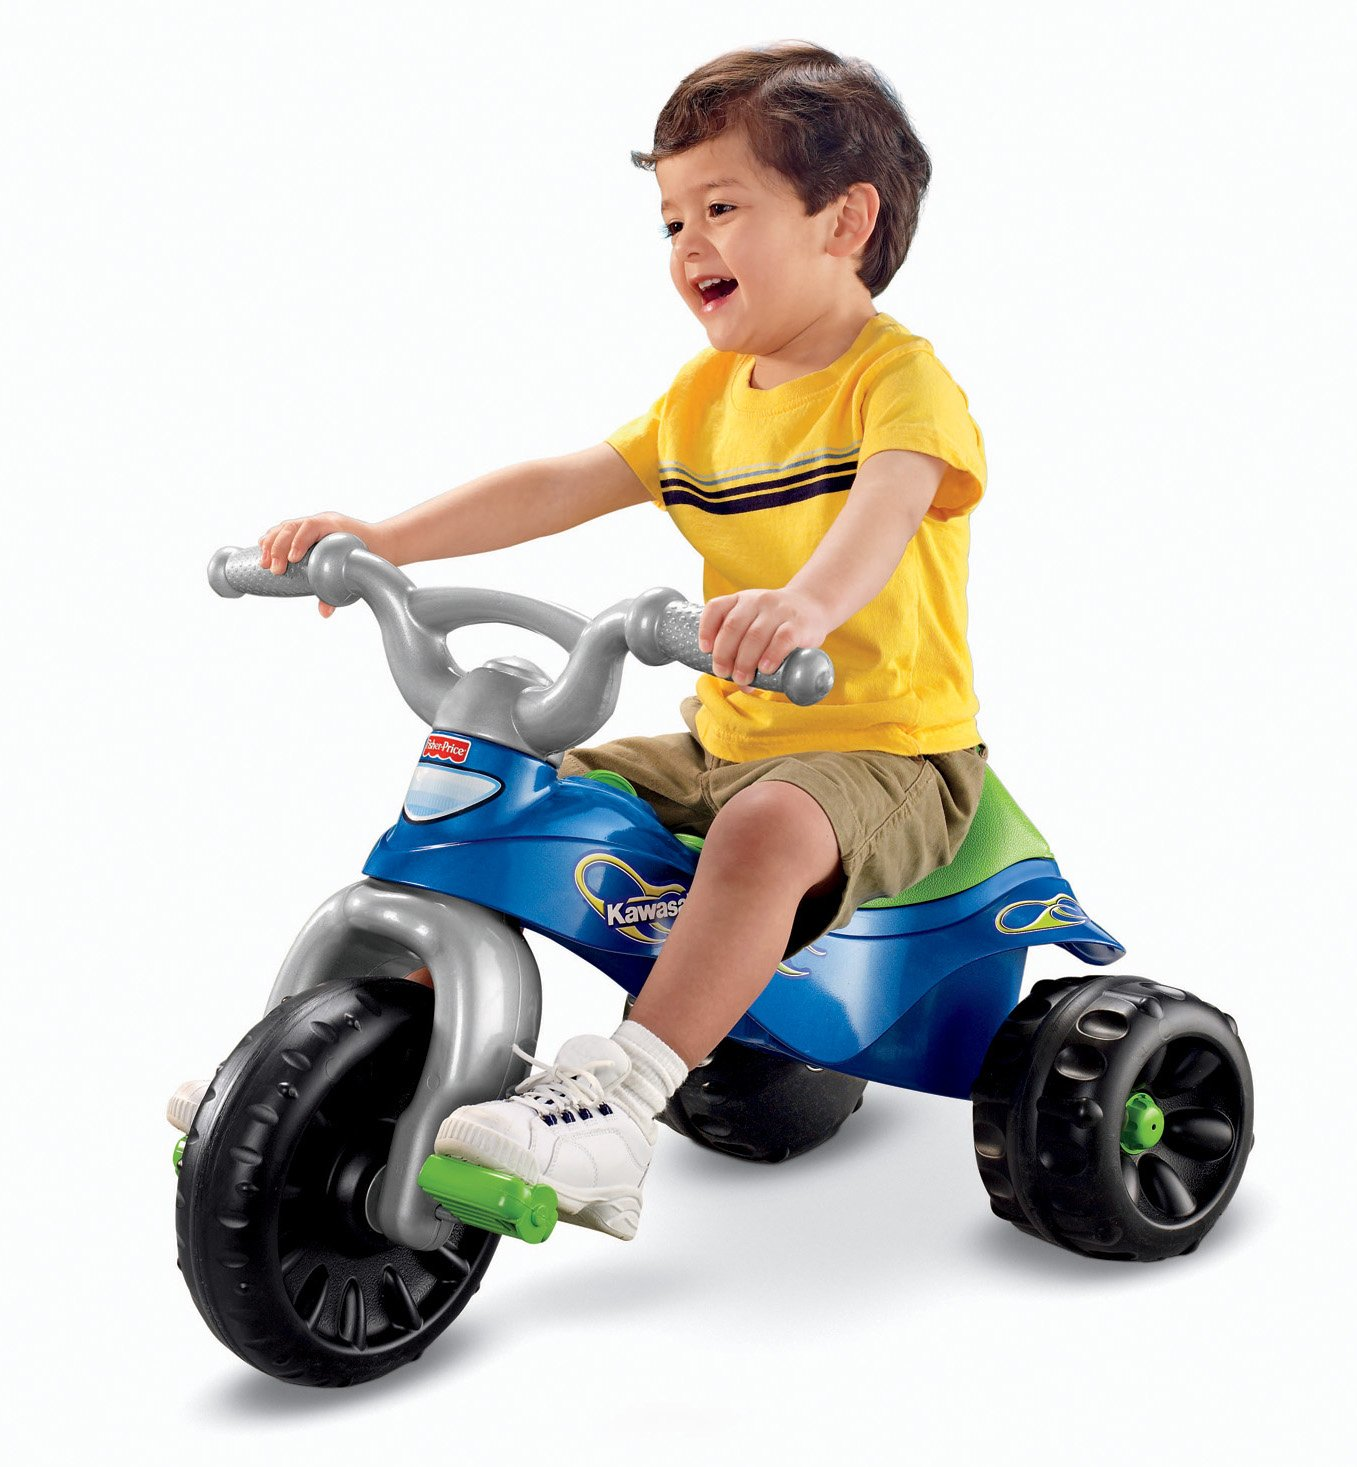 Classic Toys For Boys : Cool toys for year old boys